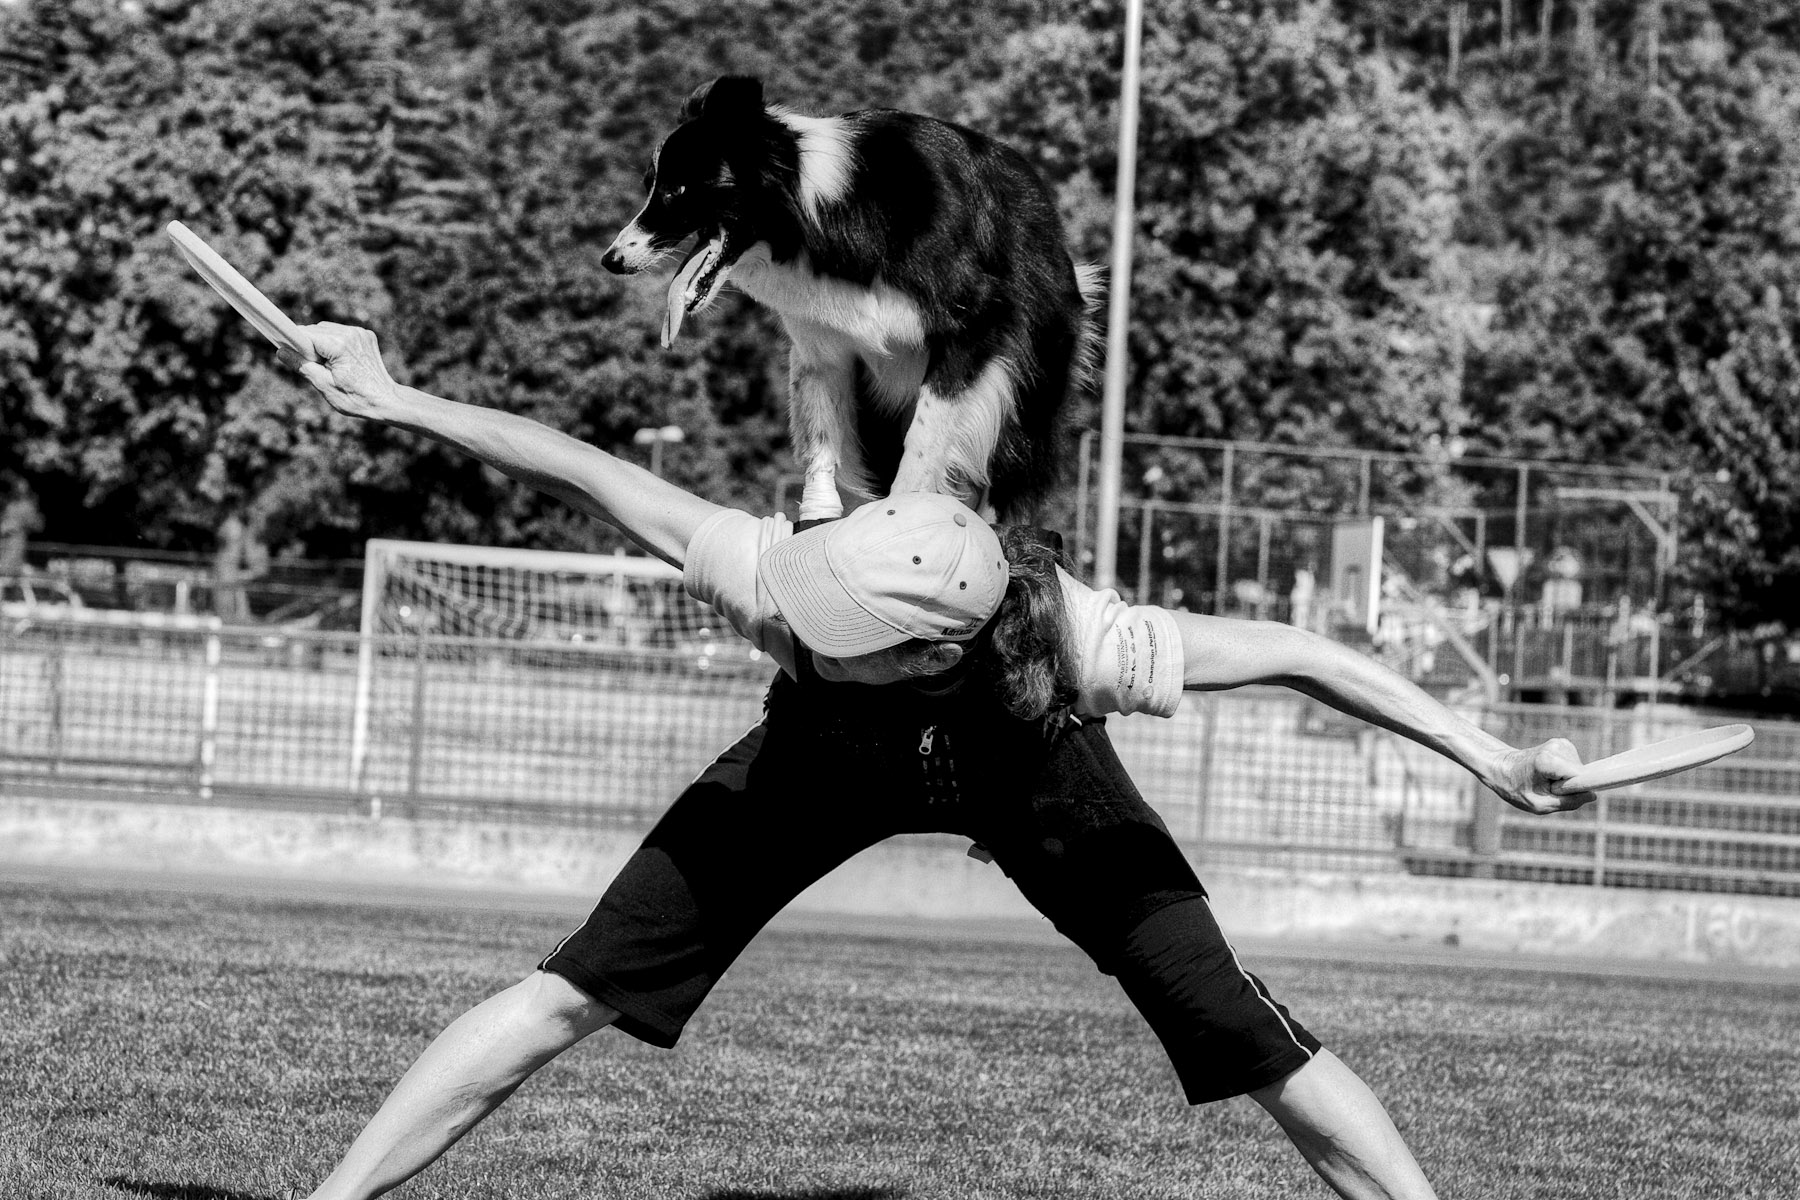 Lyra performs a back stall during practice at a sports field in Sežana, Slovenia, September 15, 2010.